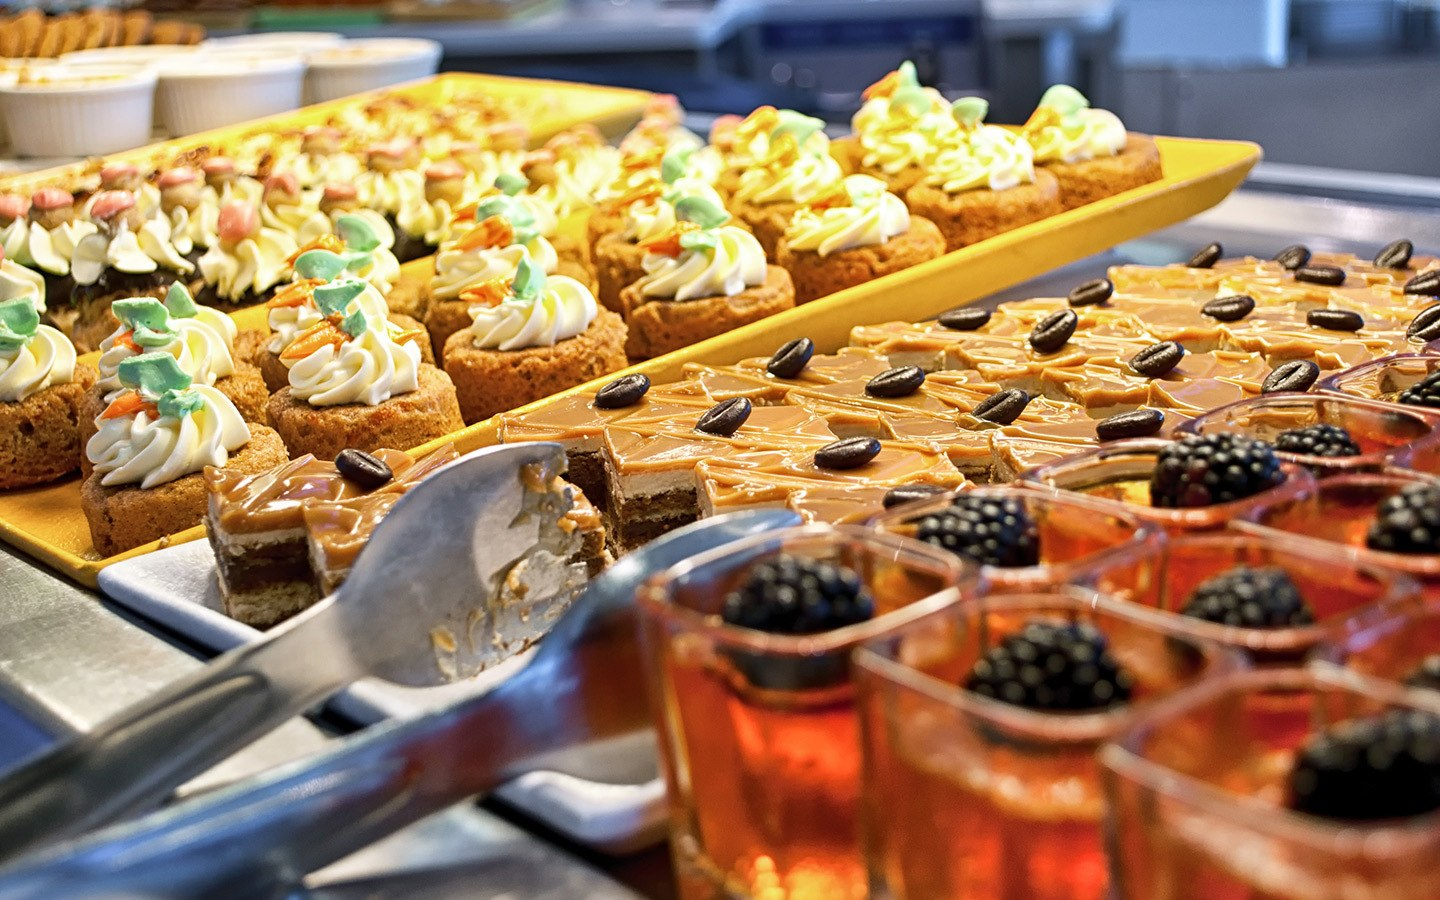 Afternoon tea in the Celebrity Equinox cruise ship buffet